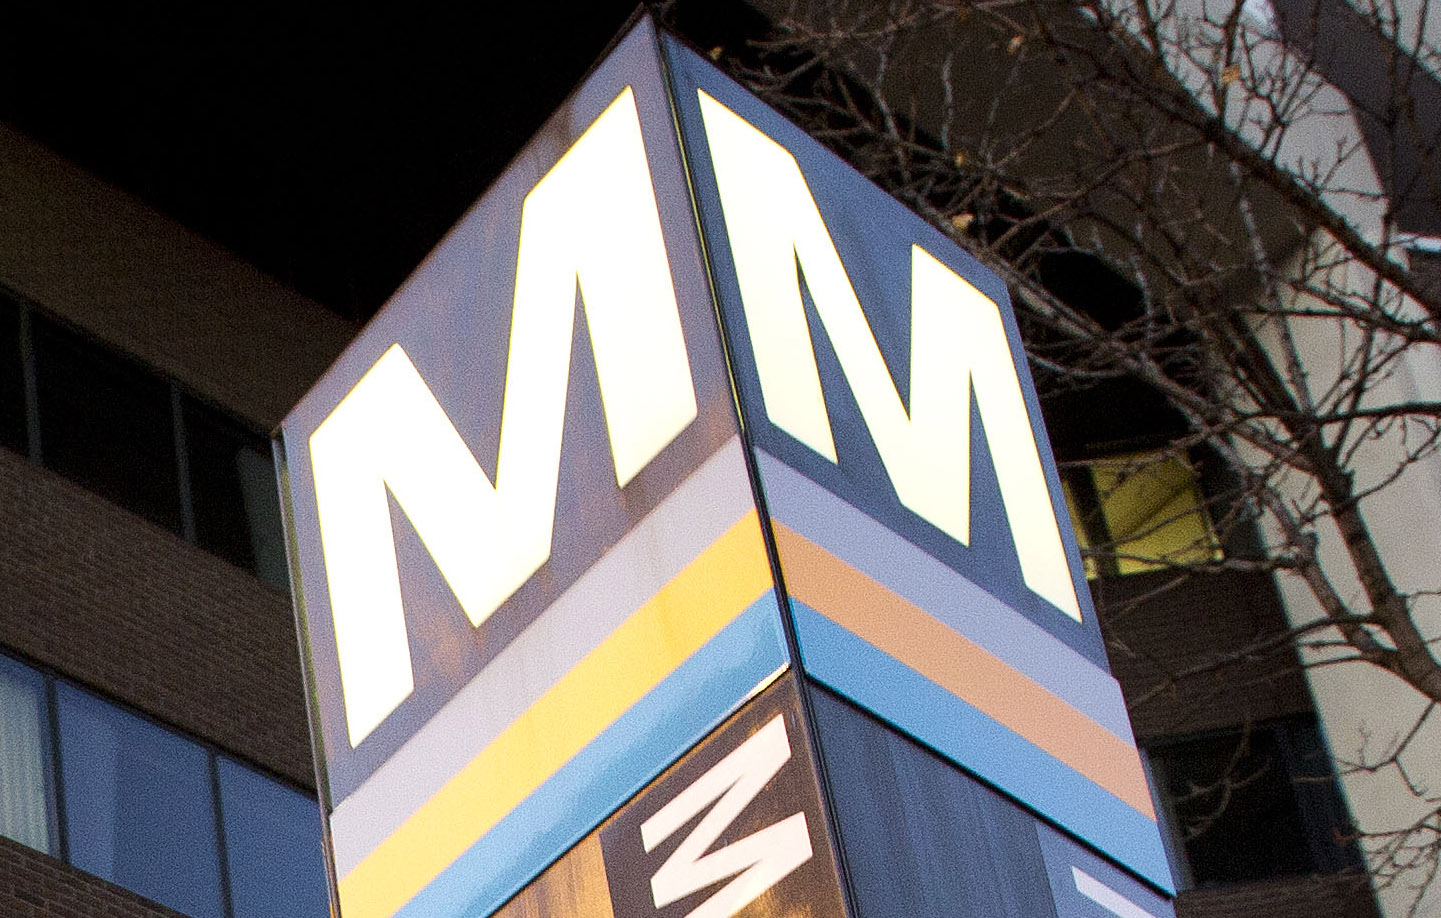 Reports: Metro performance falling before track work disruptions